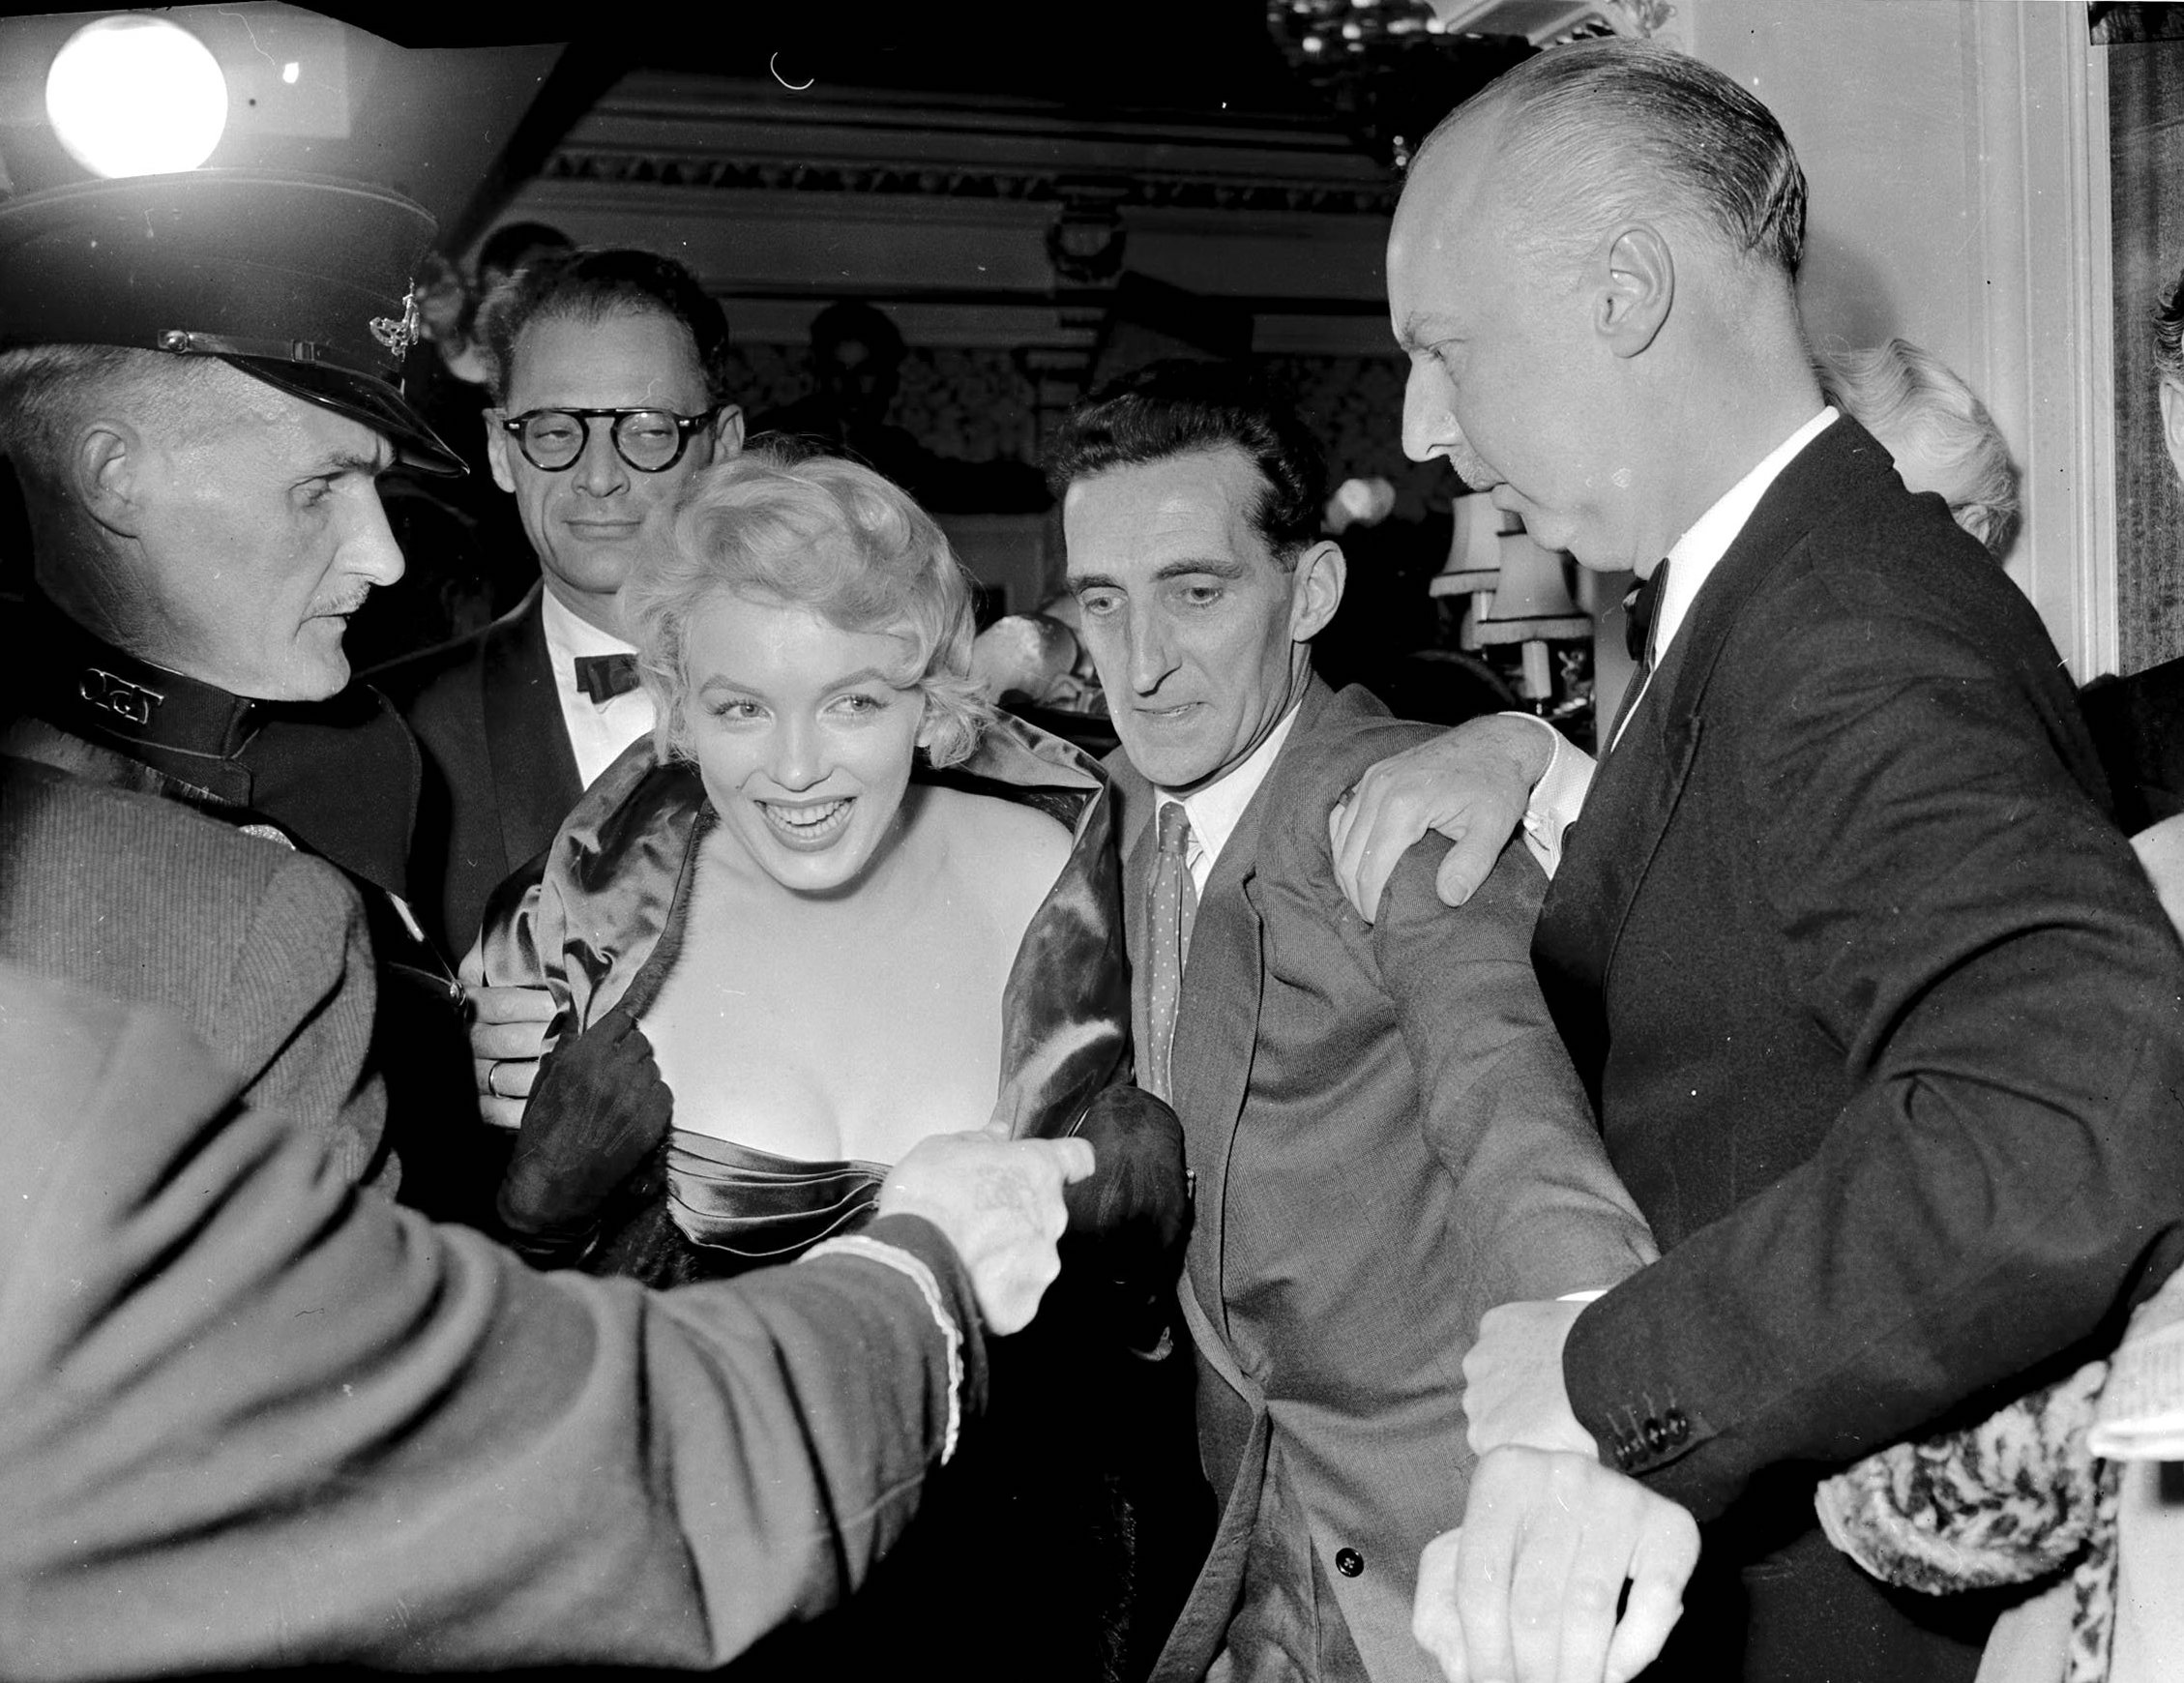 Marilyn Monroe and Arthur Miller in the crush outside the Comedy Theatre for the first night of A View From A Bridge.